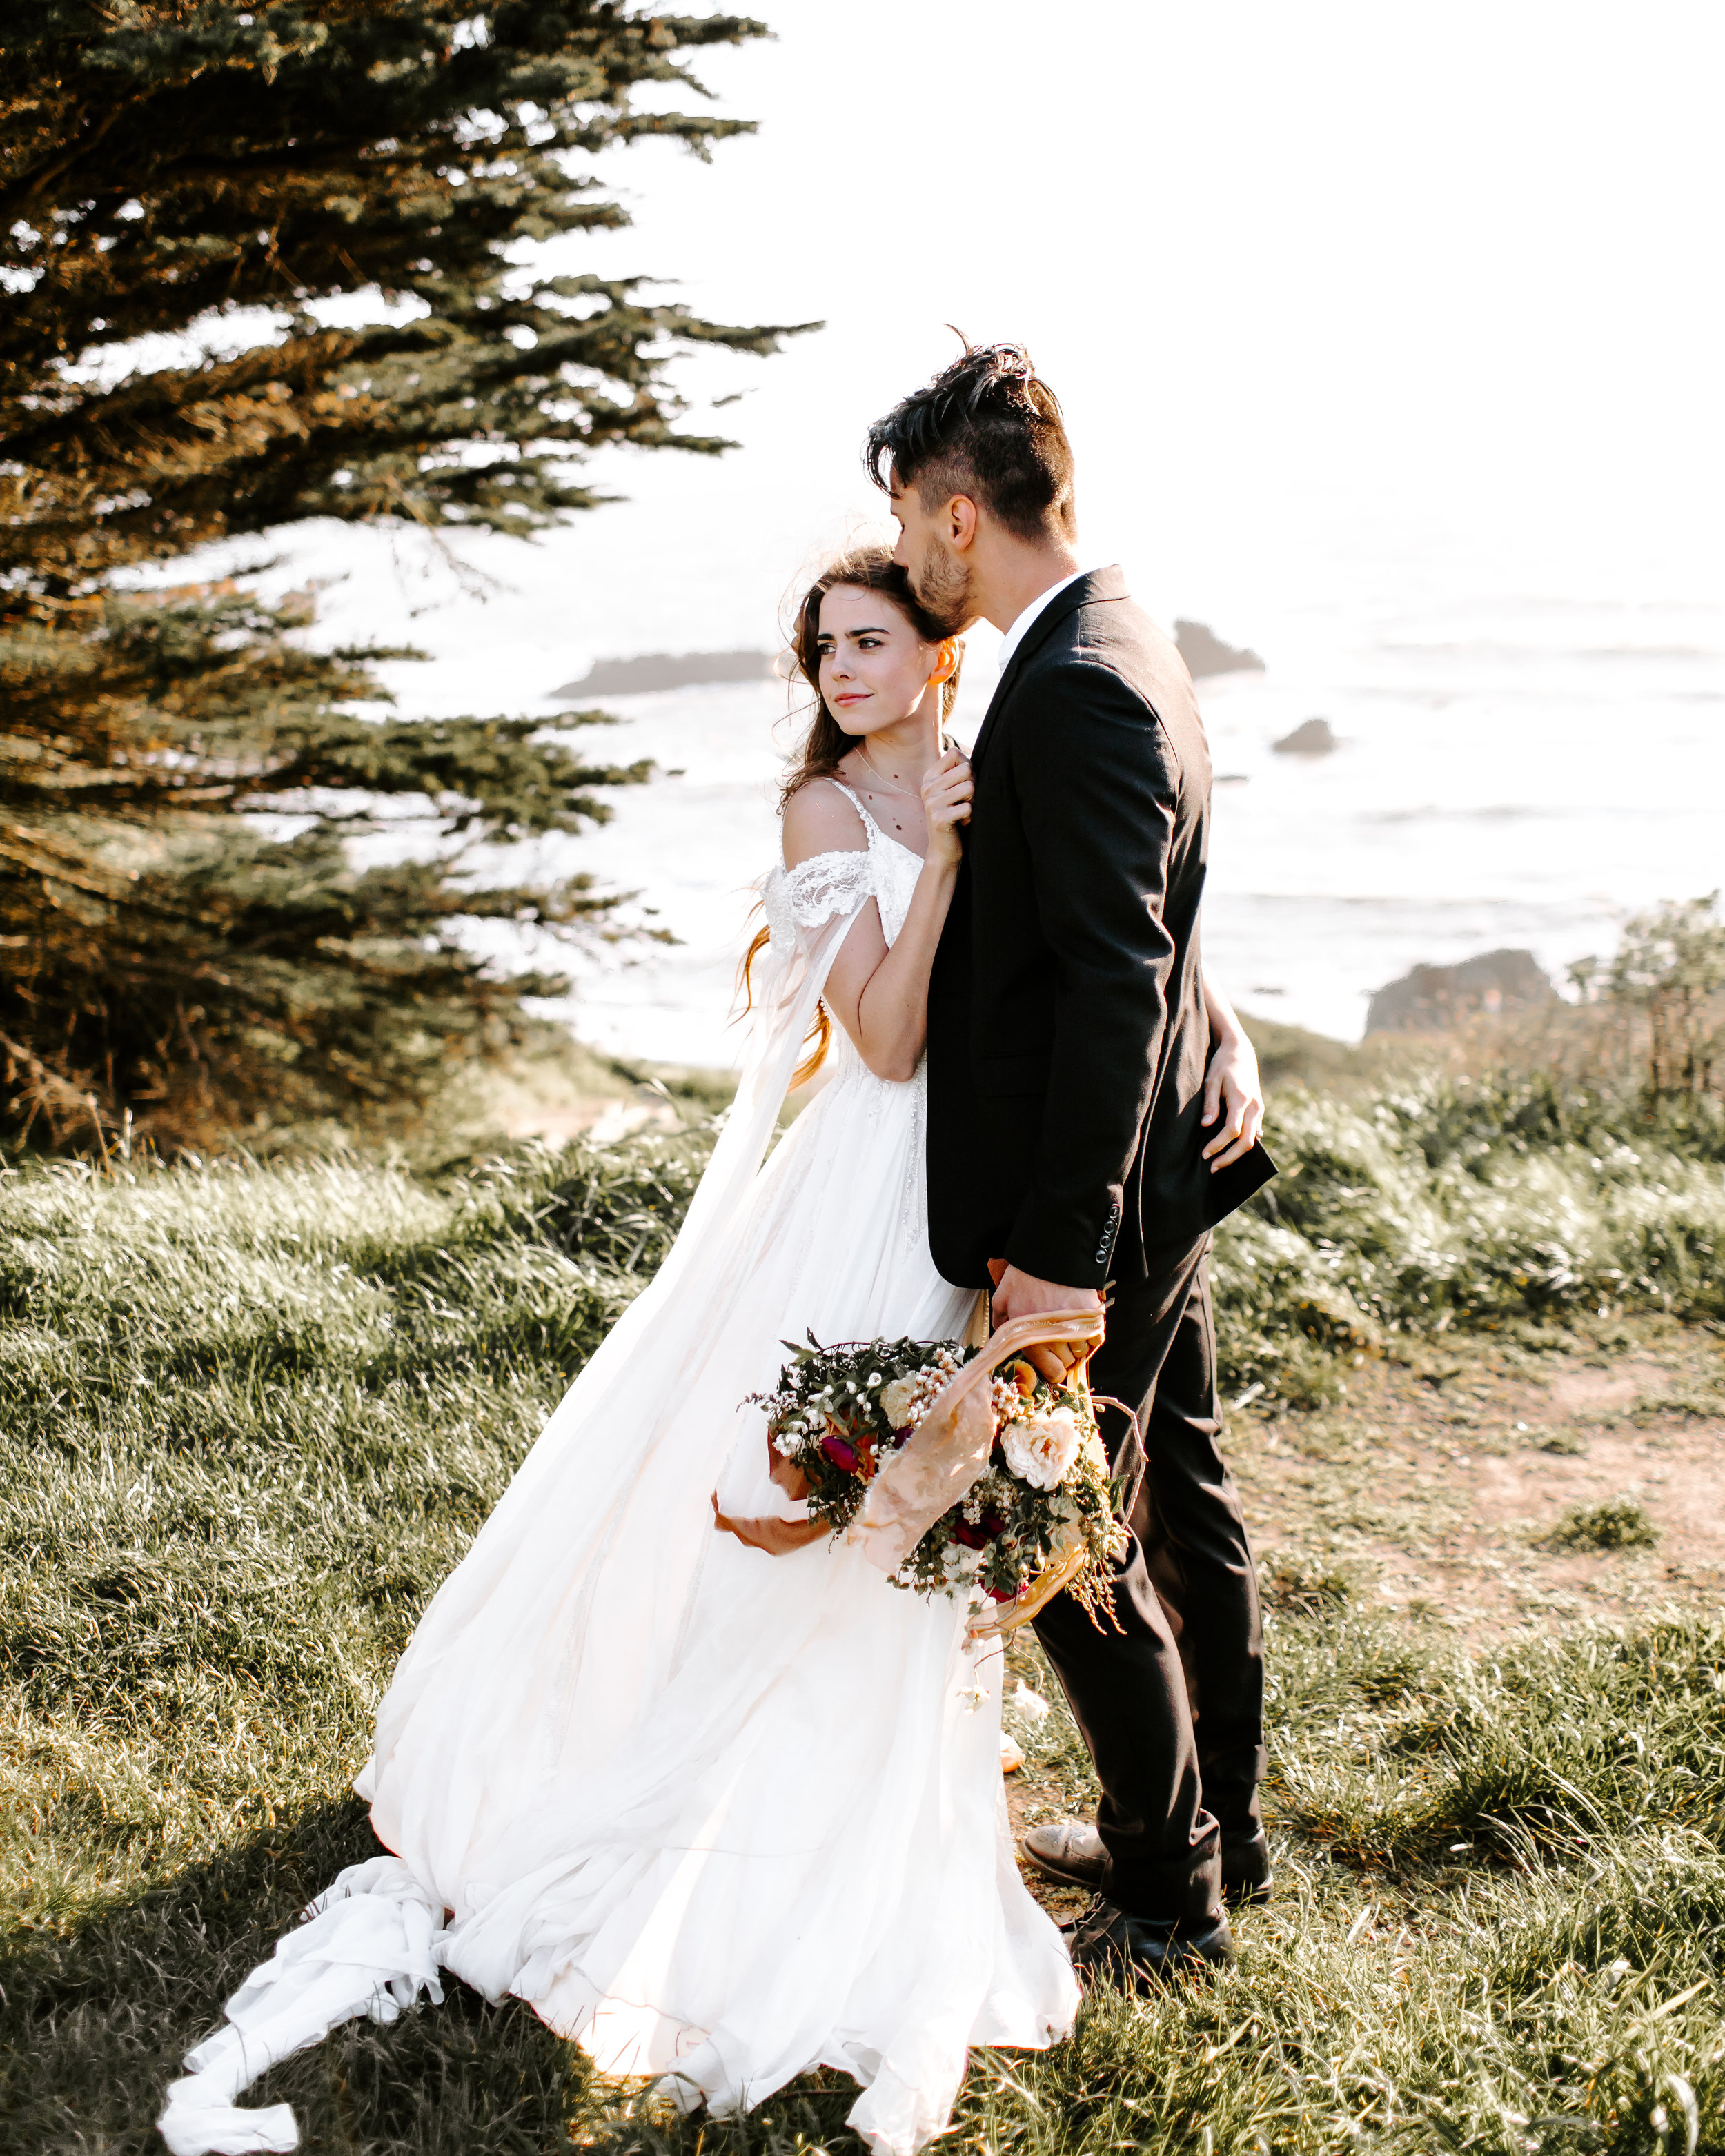 NorthernCaliforniaElopement_8.jpg